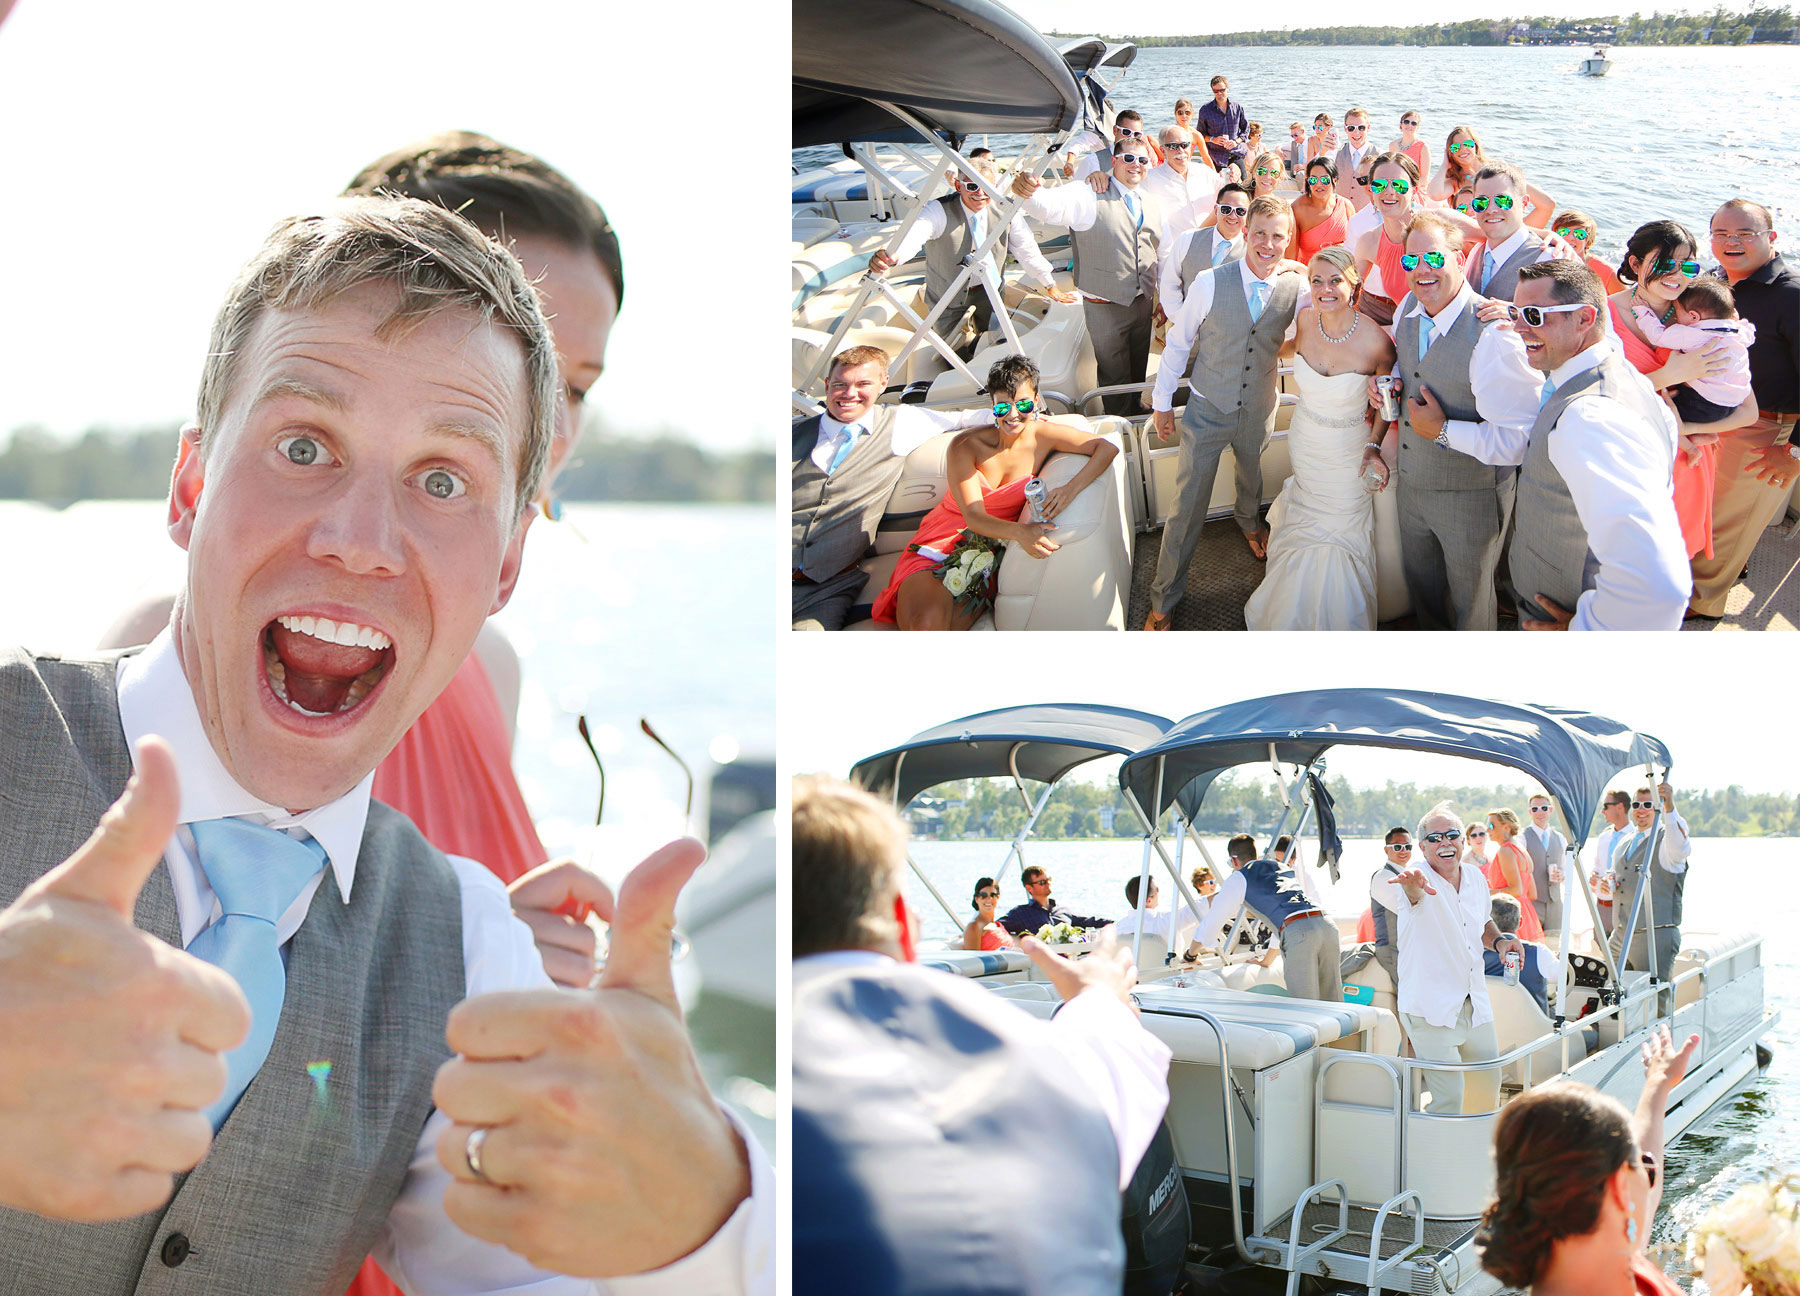 14-Brainerd-Minnesota-Wedding-Photography-by-Vick-Photography-Craguns-Resort-Lake-Boating-Pontoon-Lucy-&-Matt.jpg